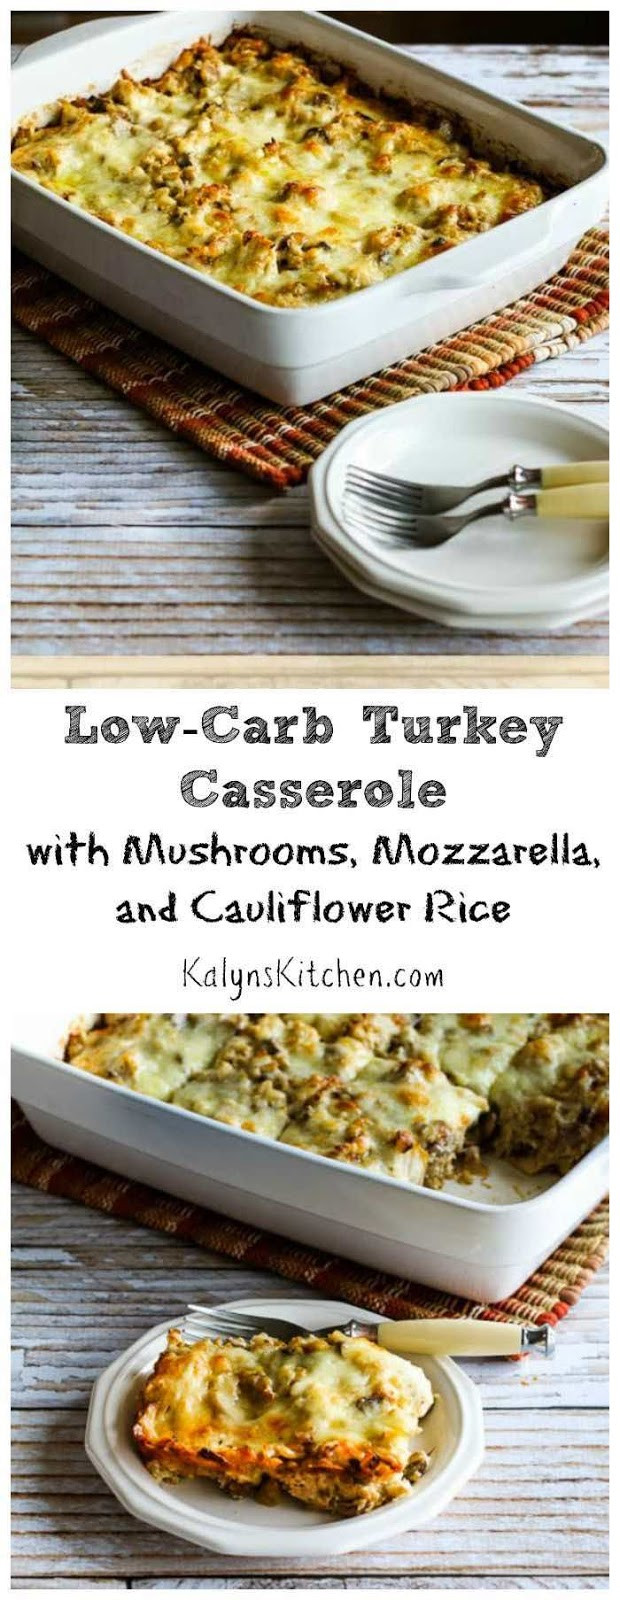 Ground Turkey Casserole Low Carb  Kalyn s Kitchen Low Carb Turkey Casserole with Mushrooms